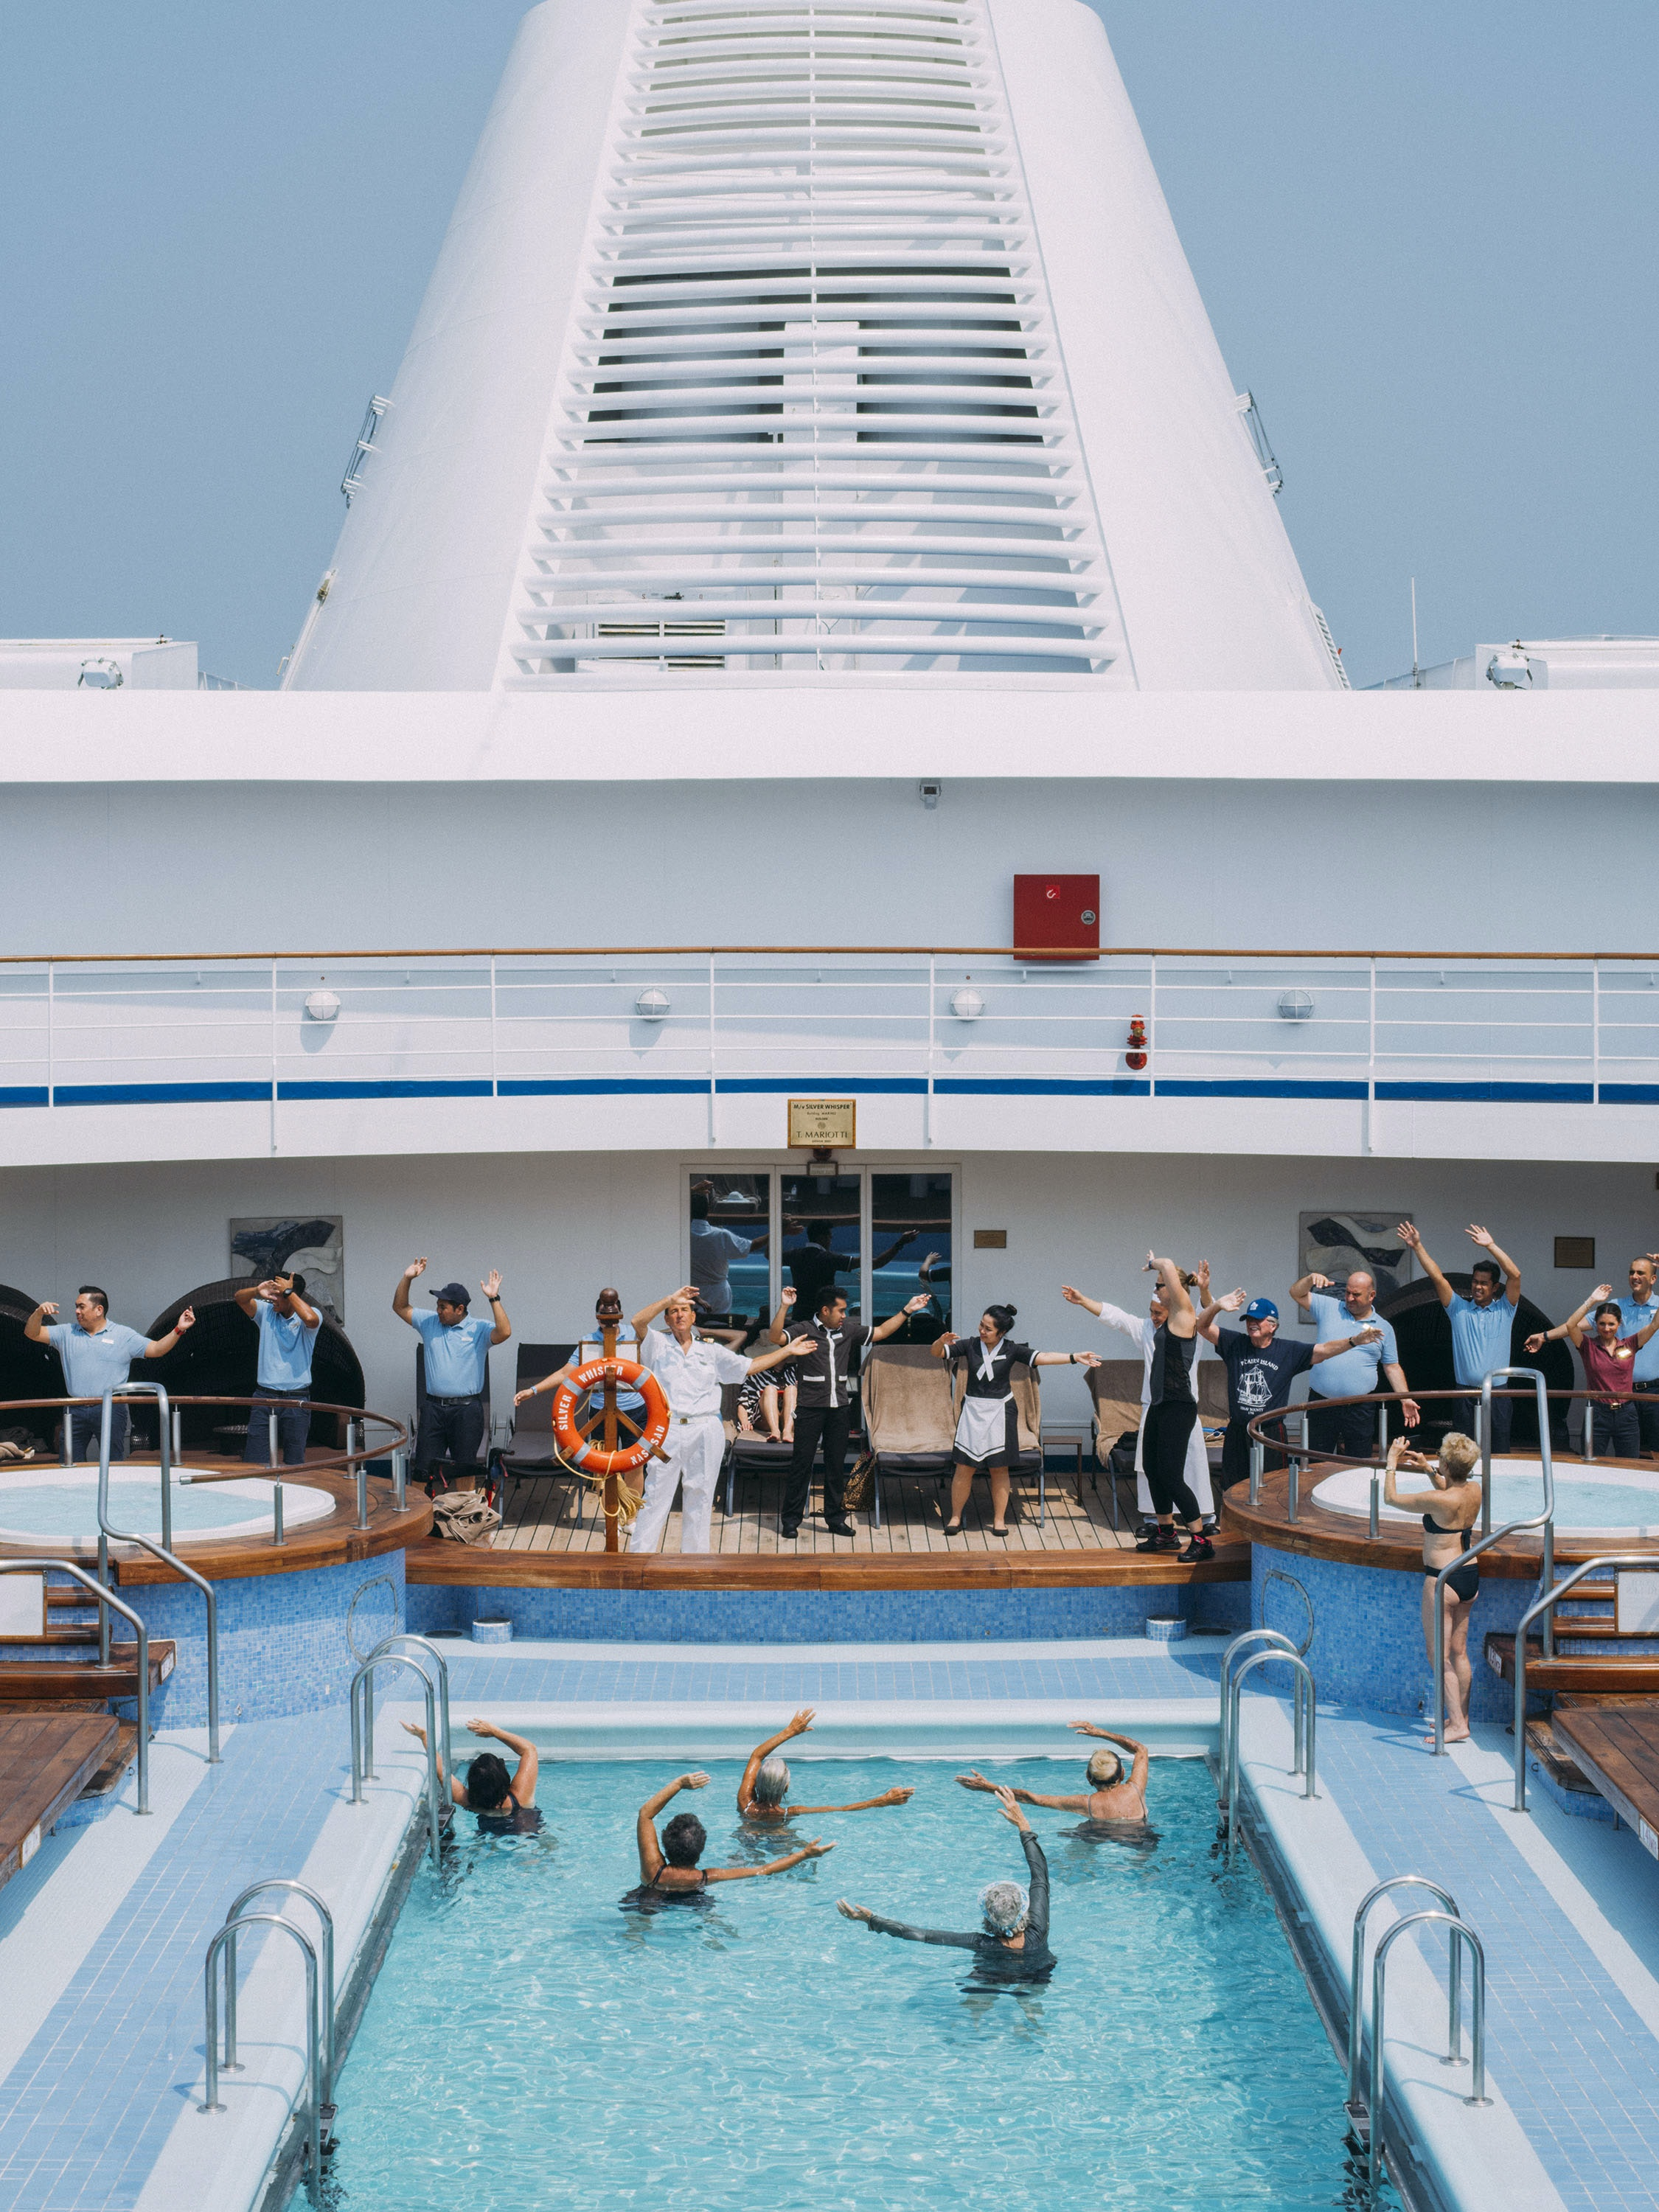 Many of the ship's crew members join in for the choreographed opening warm-up to the daily water aerobics class in the upper-deck outdoor pool of the Silver Whisper.